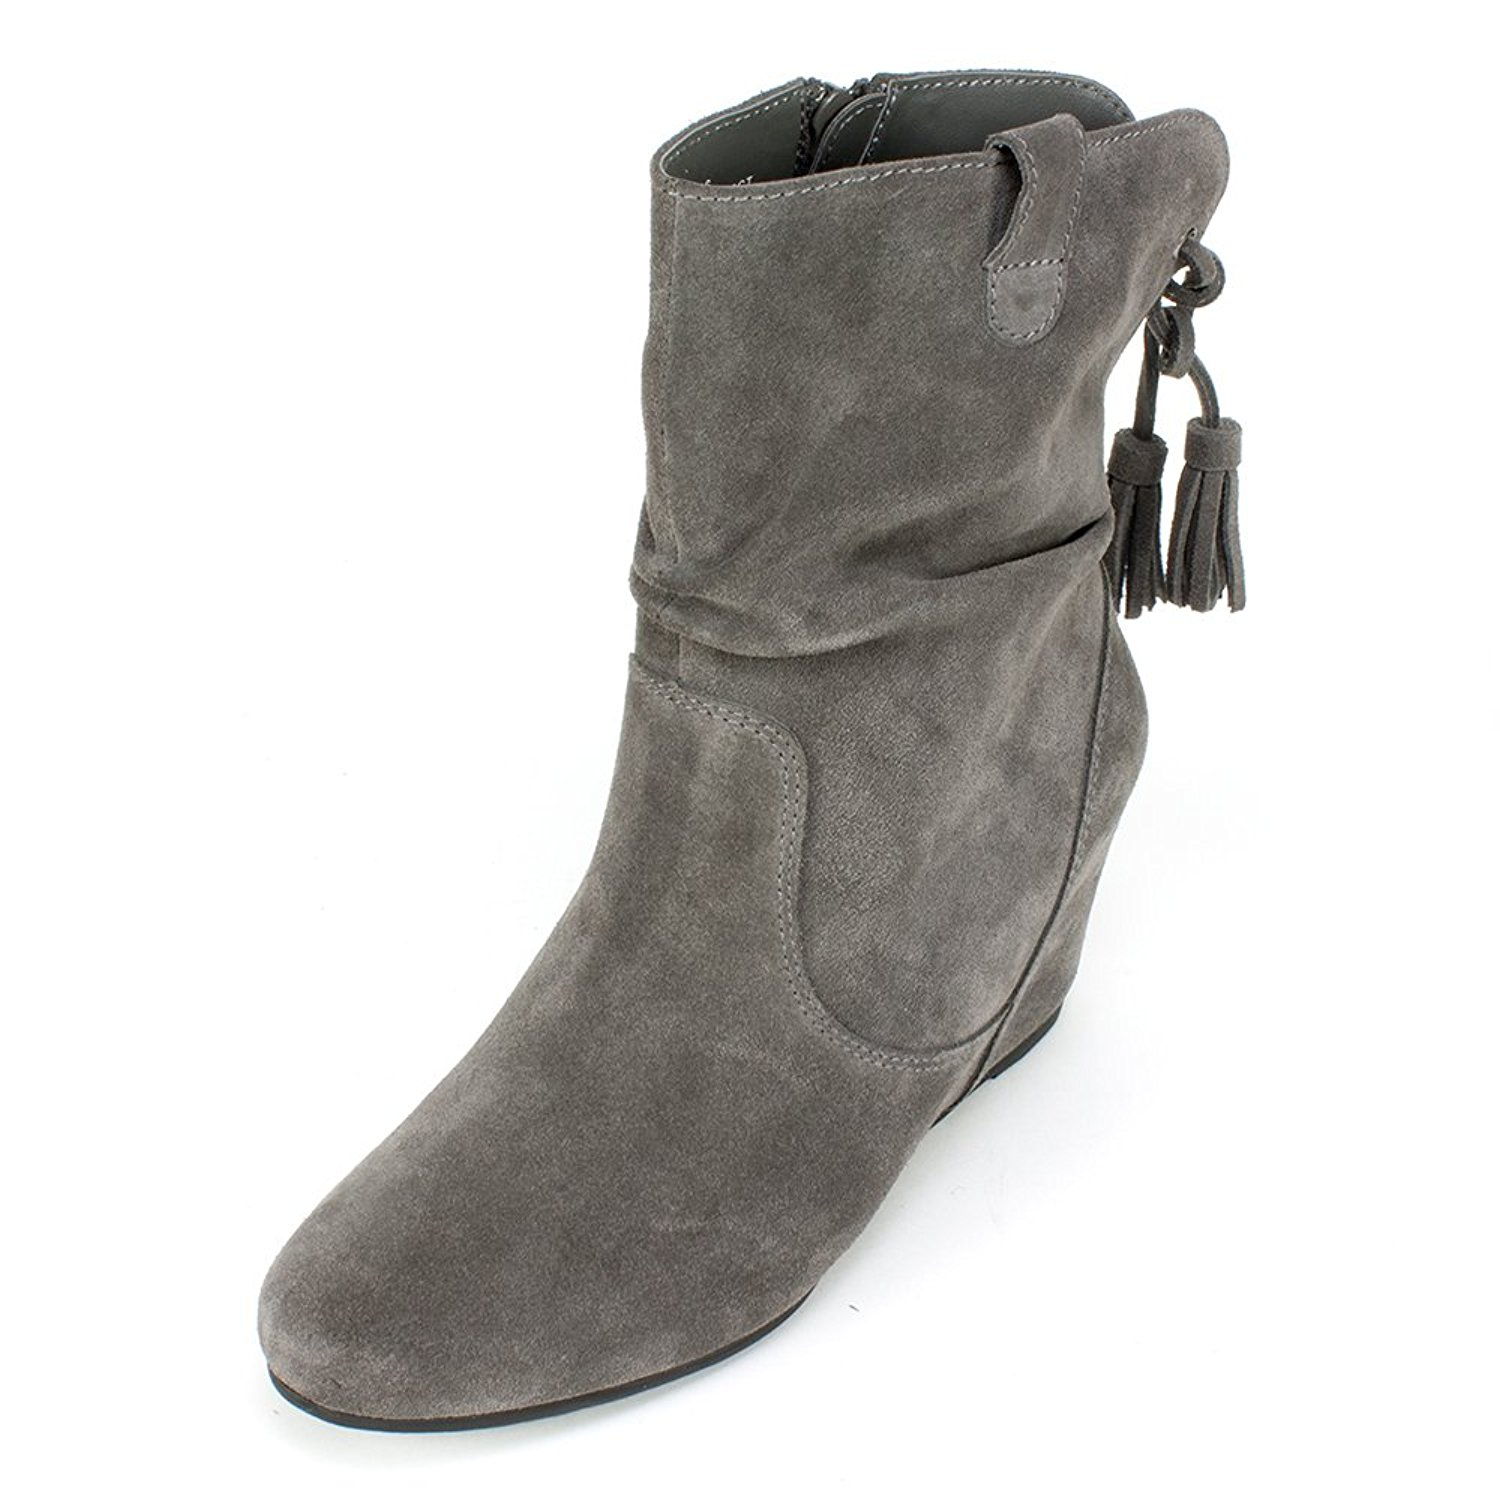 Womens Perfect Closed Toe Ankle Fashion Boots